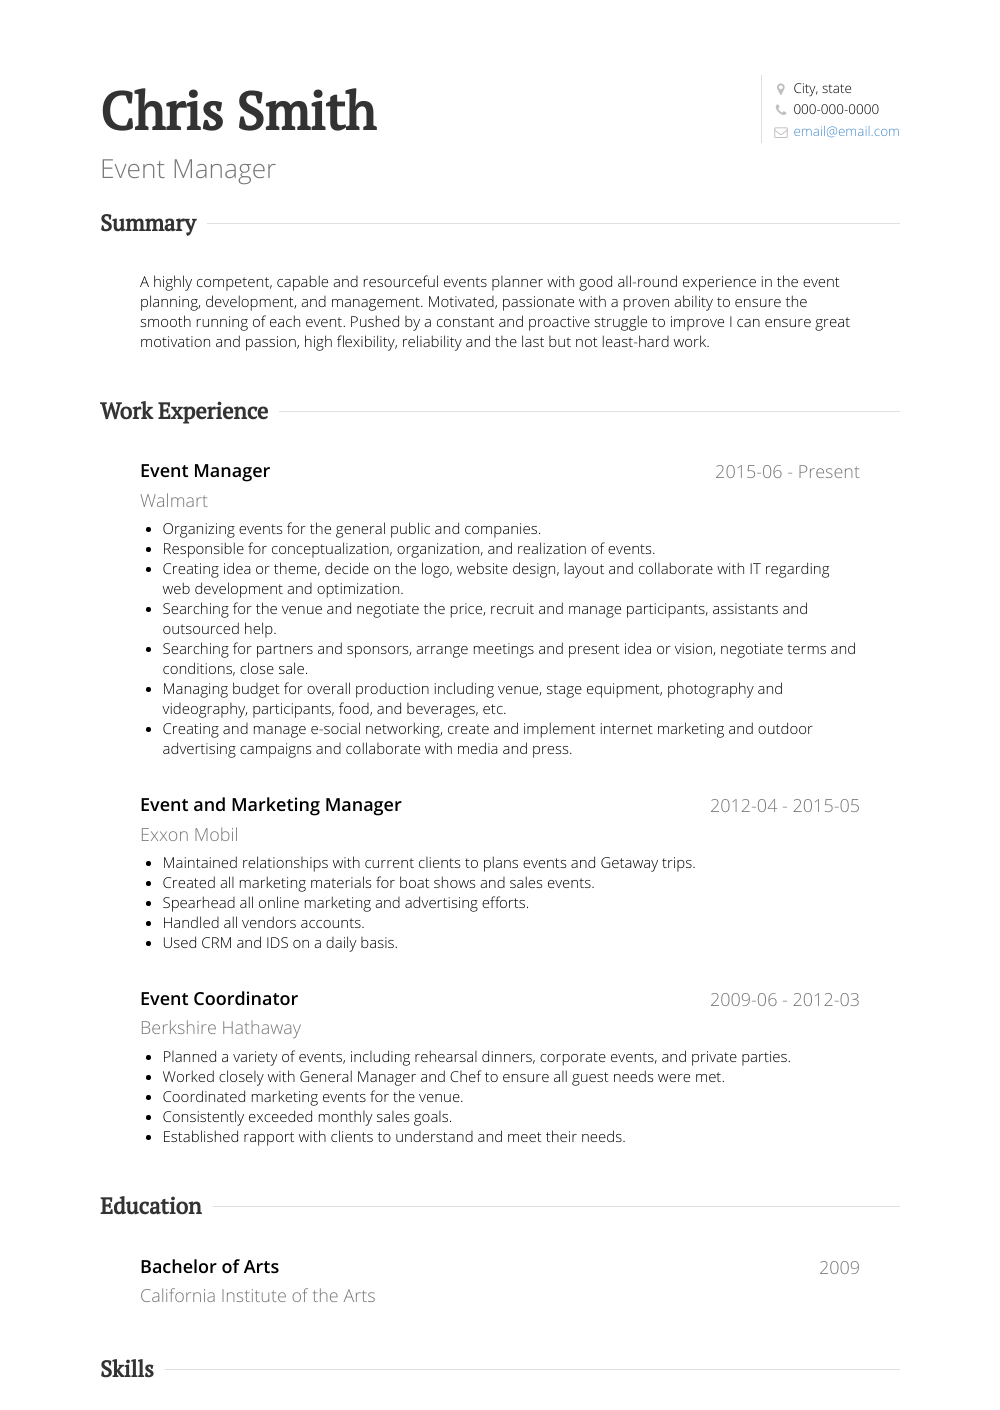 Event Manager - Resume Samples & Templates | VisualCV